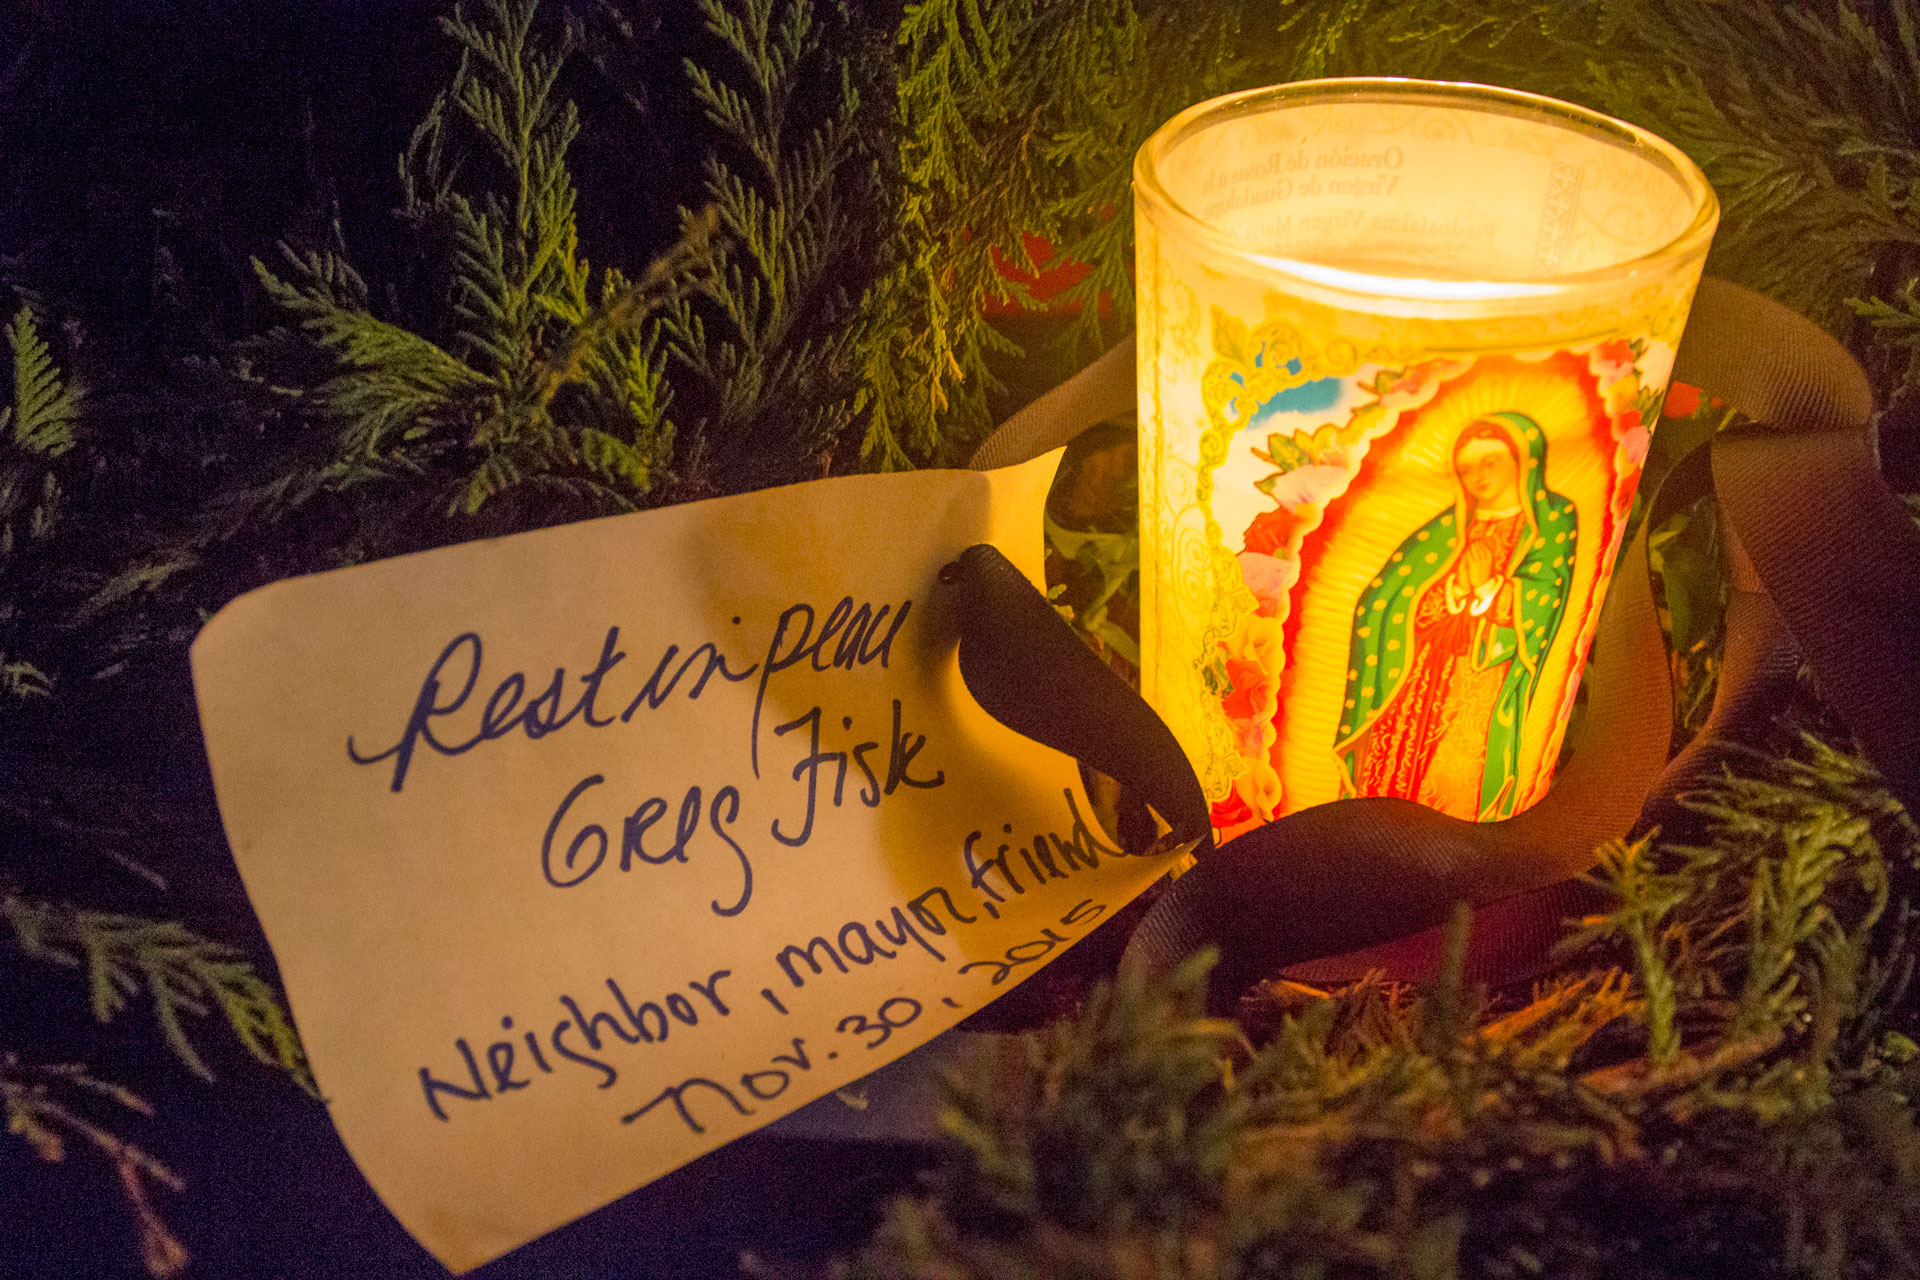 """A candle and a note reading """"Rest in peace Greg Fisk. Neighbor, mayor, friend. Nov. 30, 2015"""" outside a neighbor's house on Kennedy St. Monday evening. (Photo by Mikko Wilson/KTOO)"""